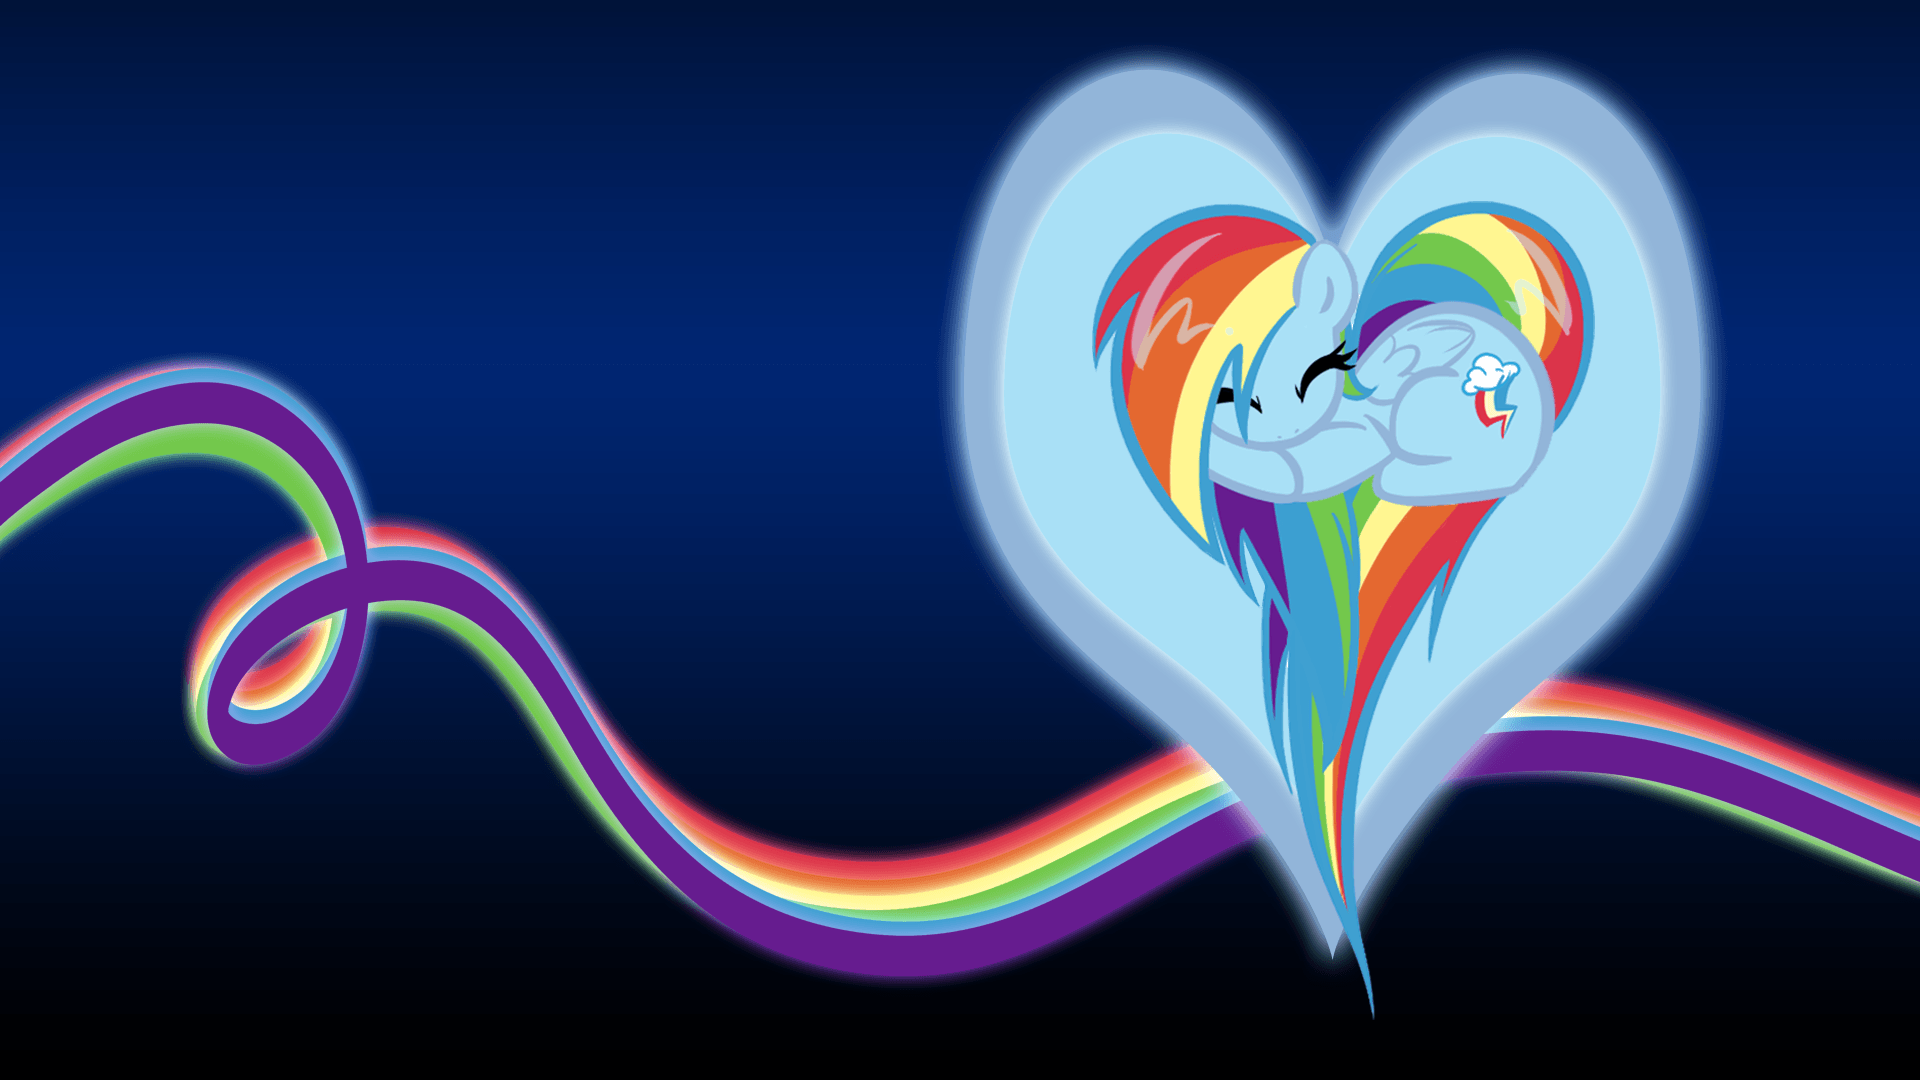 mlp background pony wallpapers - photo #18